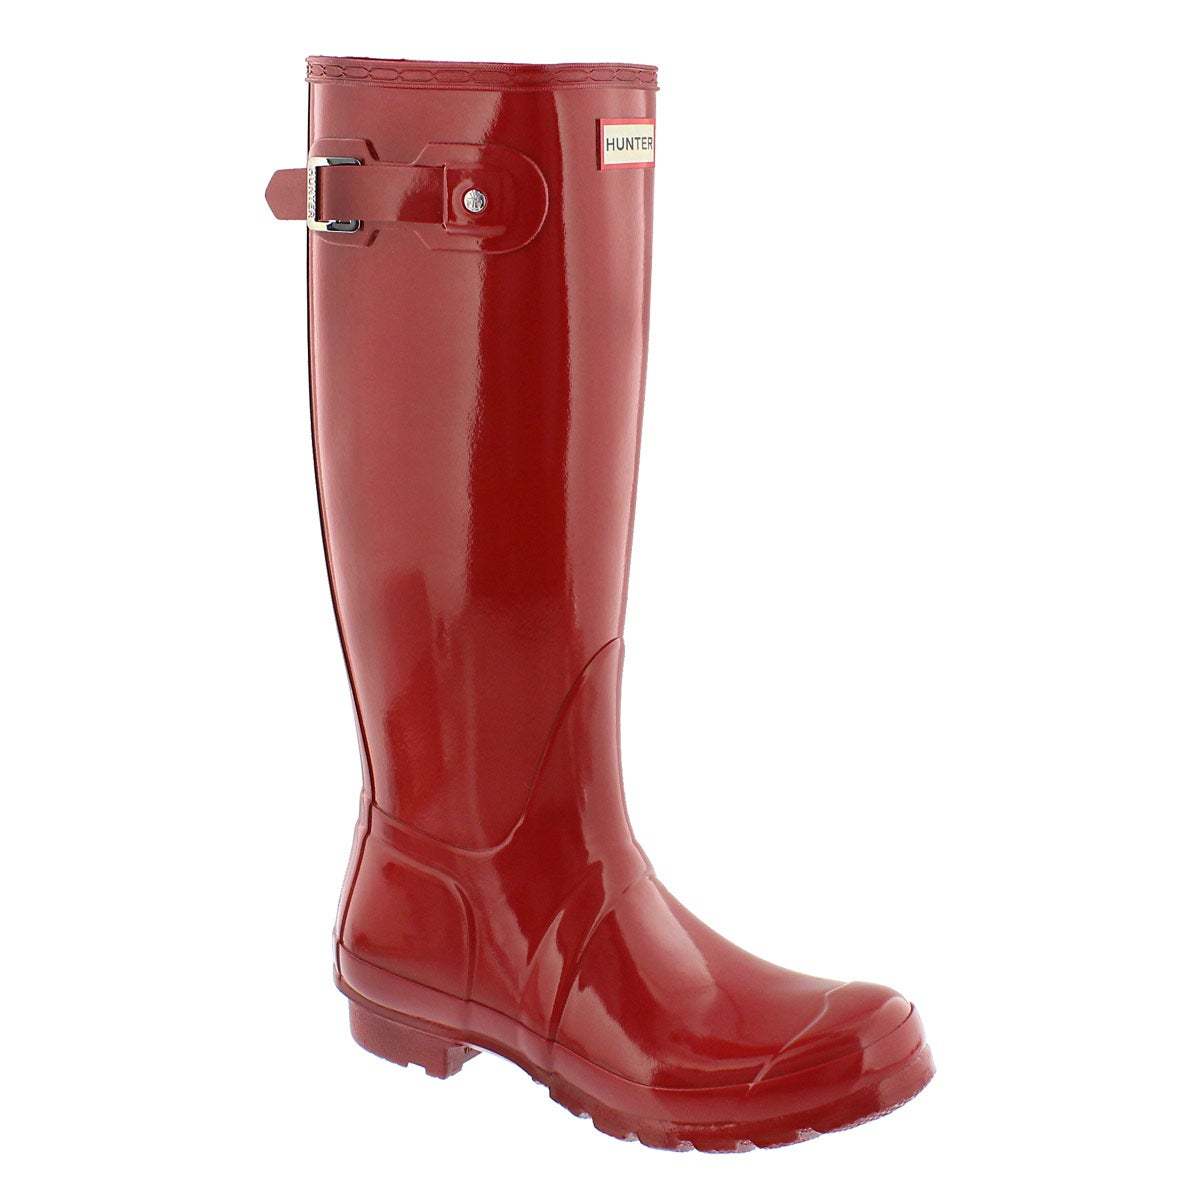 Women's ORIGINAL TALL GLOSS red rain boots